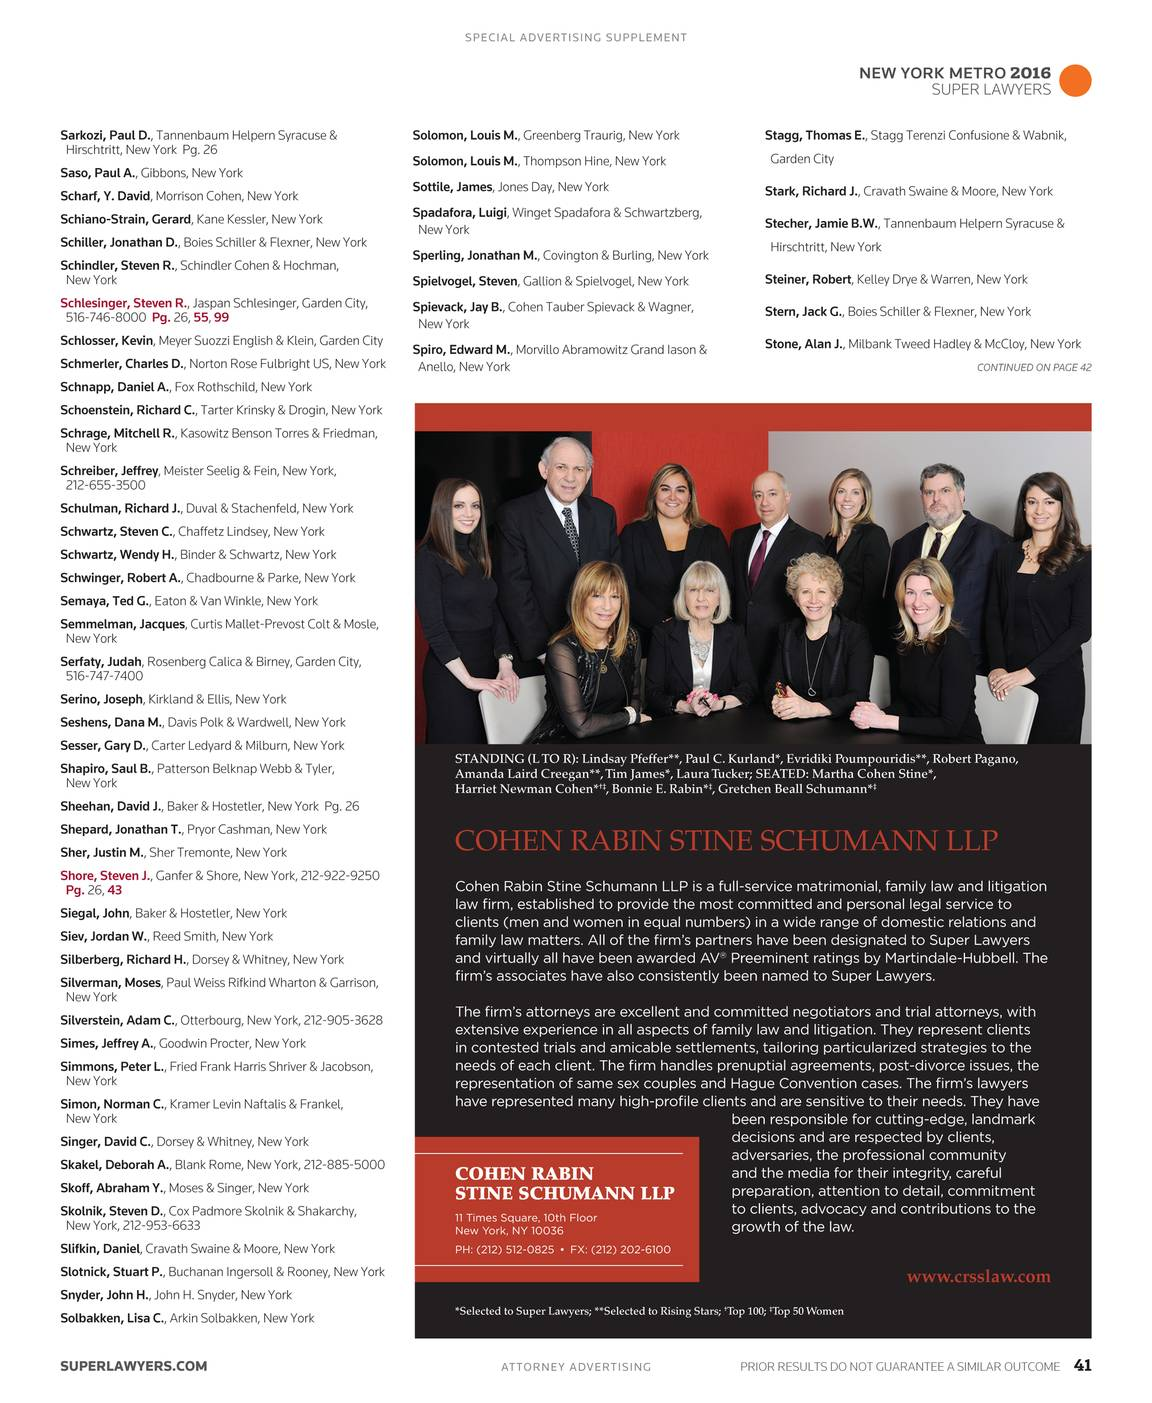 Super Lawyers New York Metro 2016 Supplement Page 41